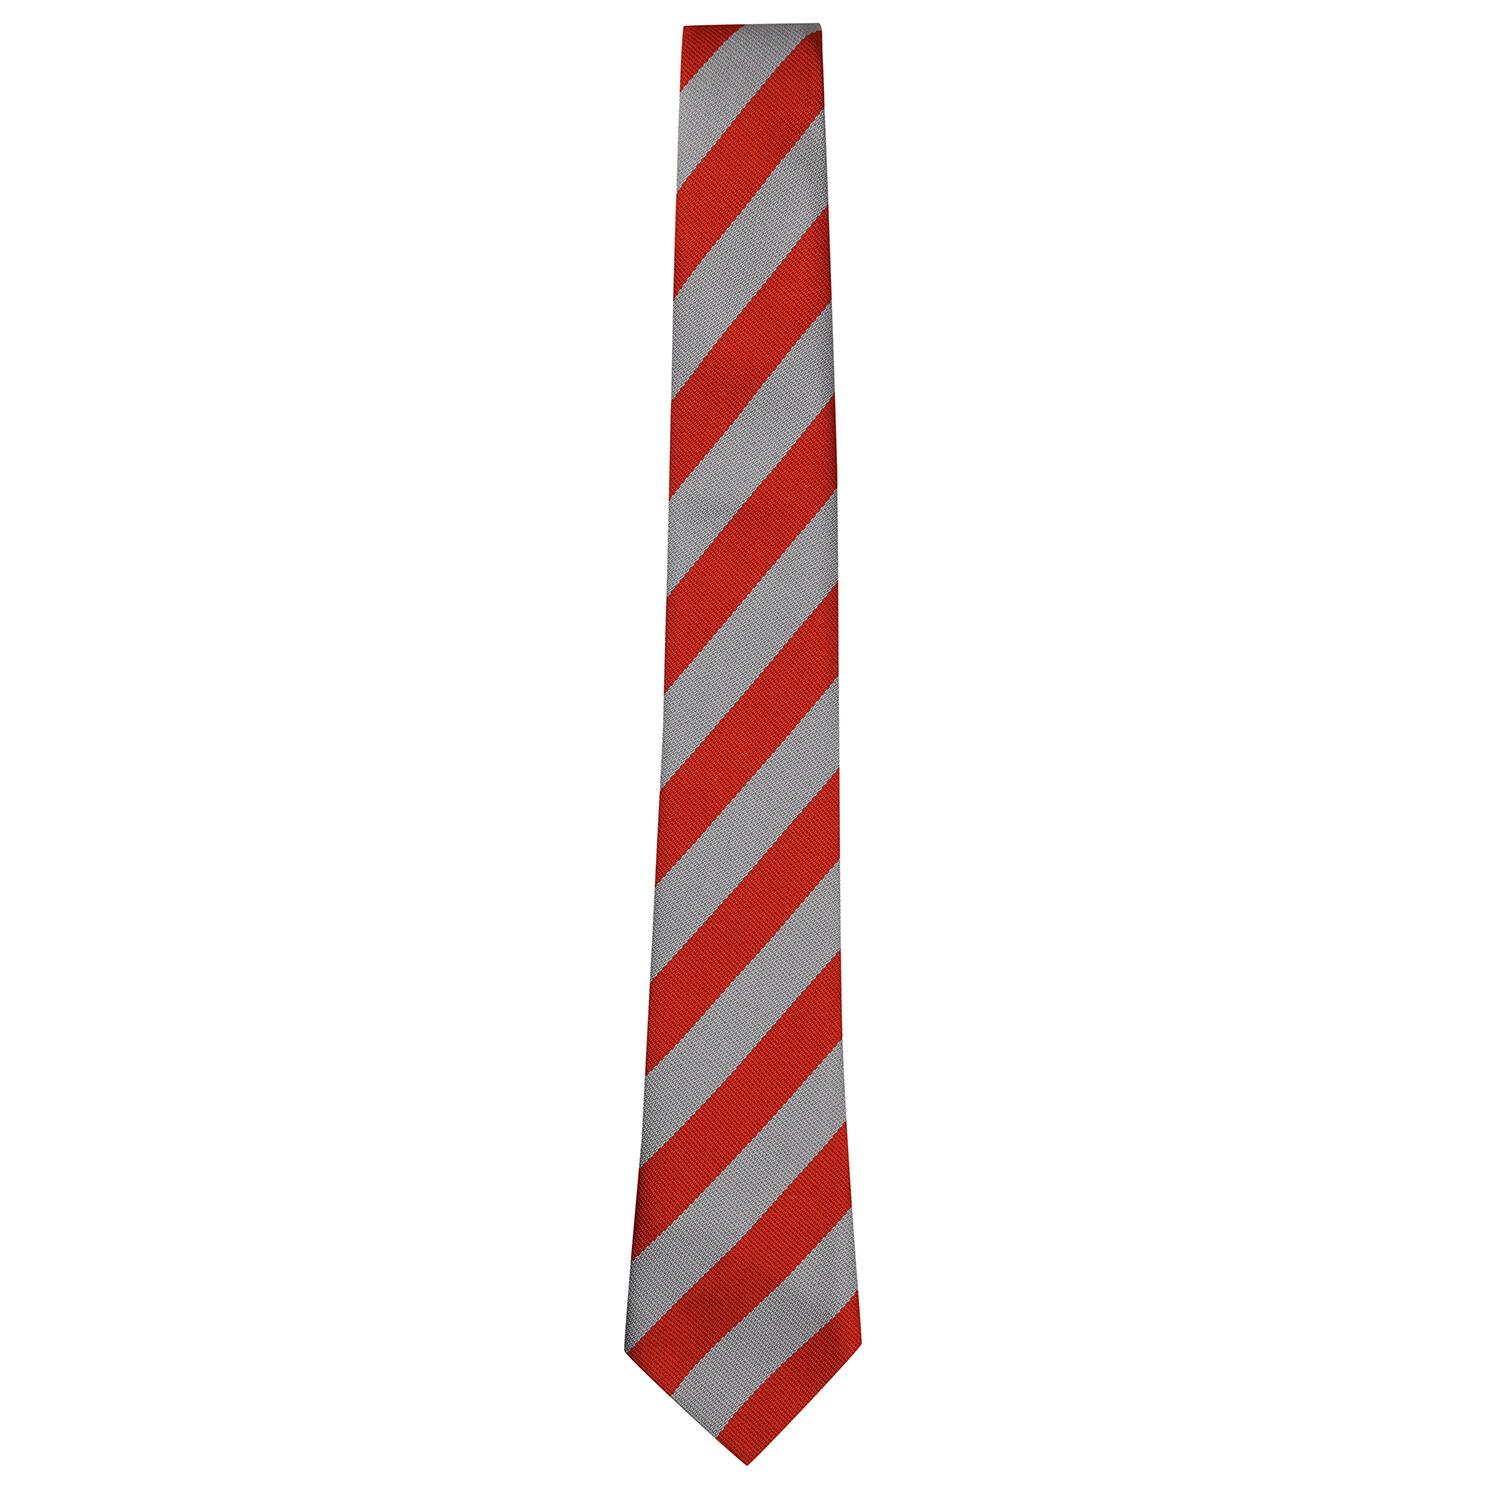 Strone Primary School tie